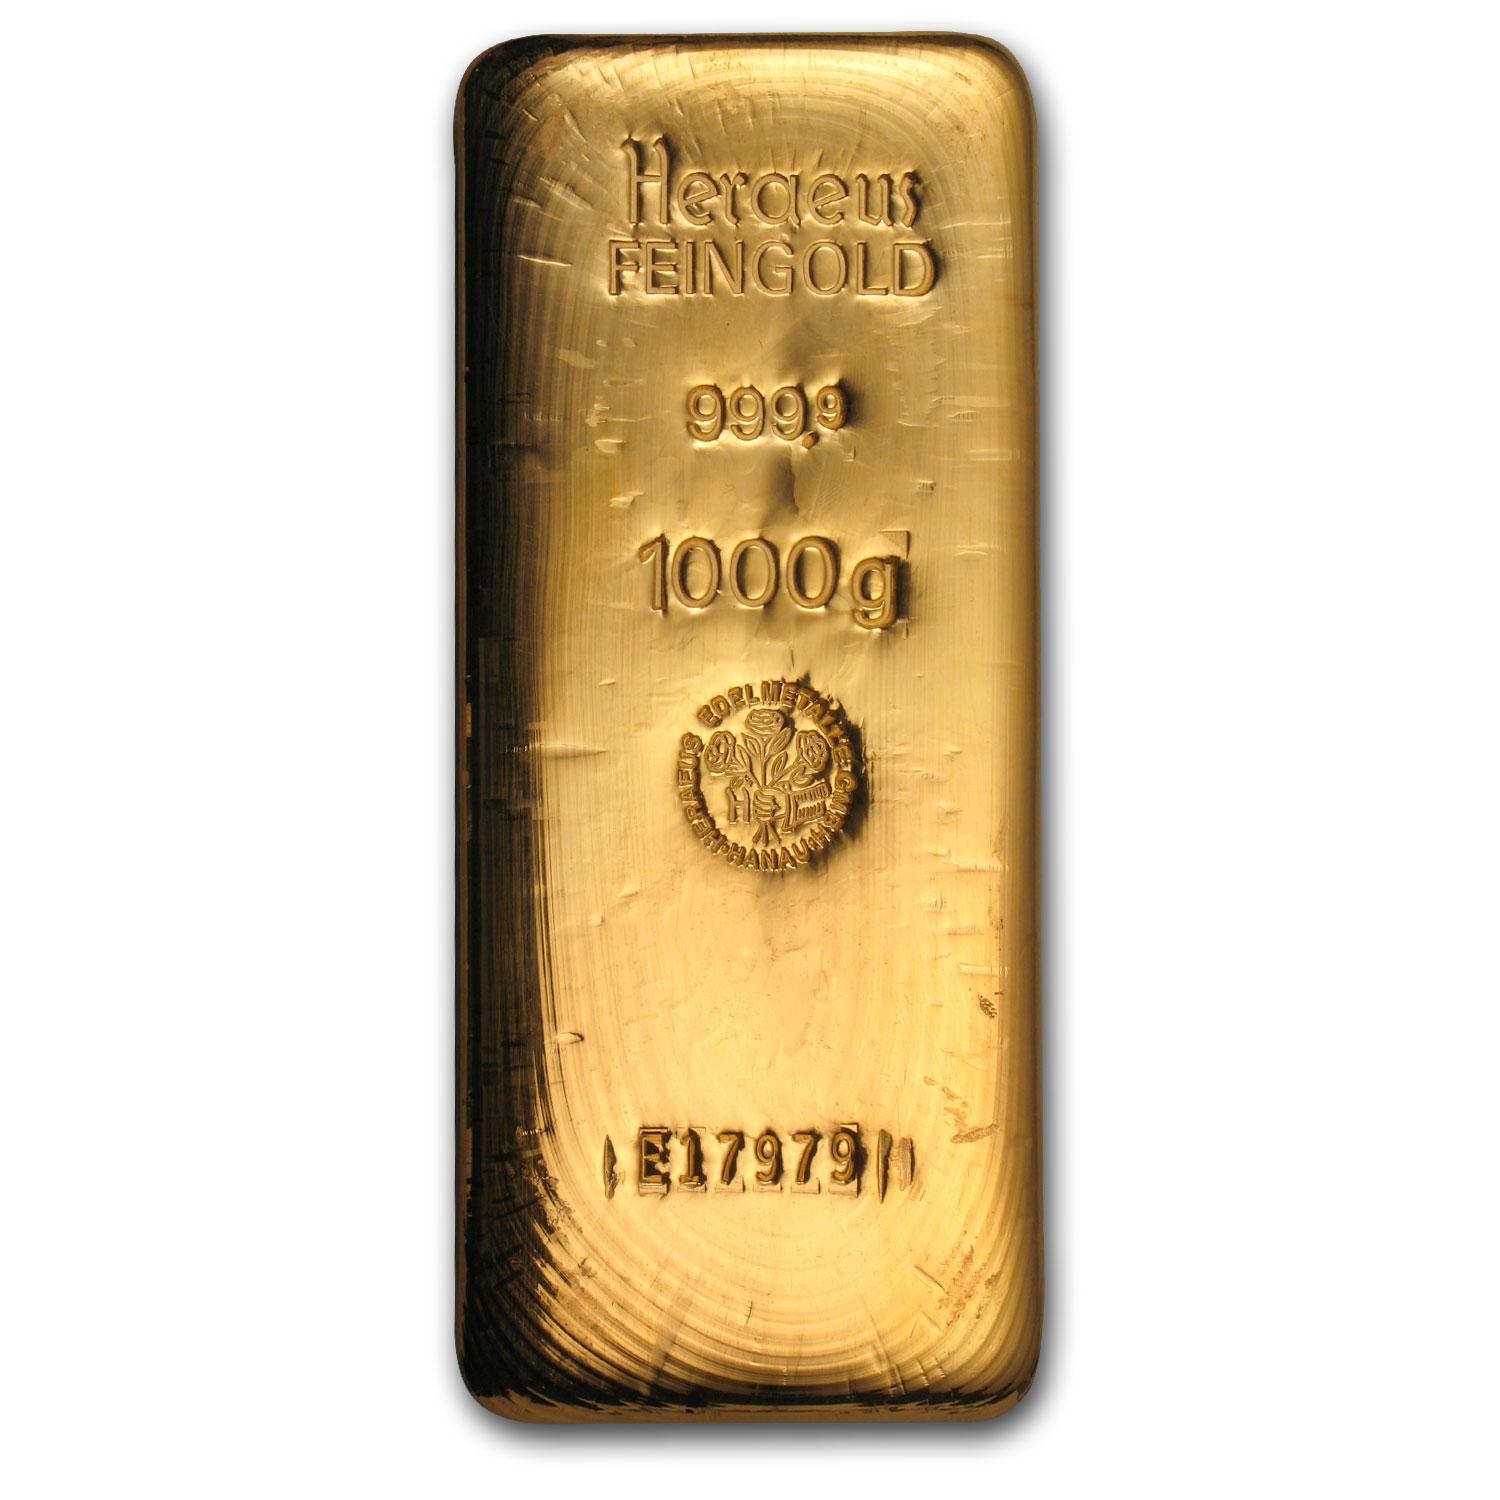 1 kilo Gold Bars - Heraeus (32.15 oz)